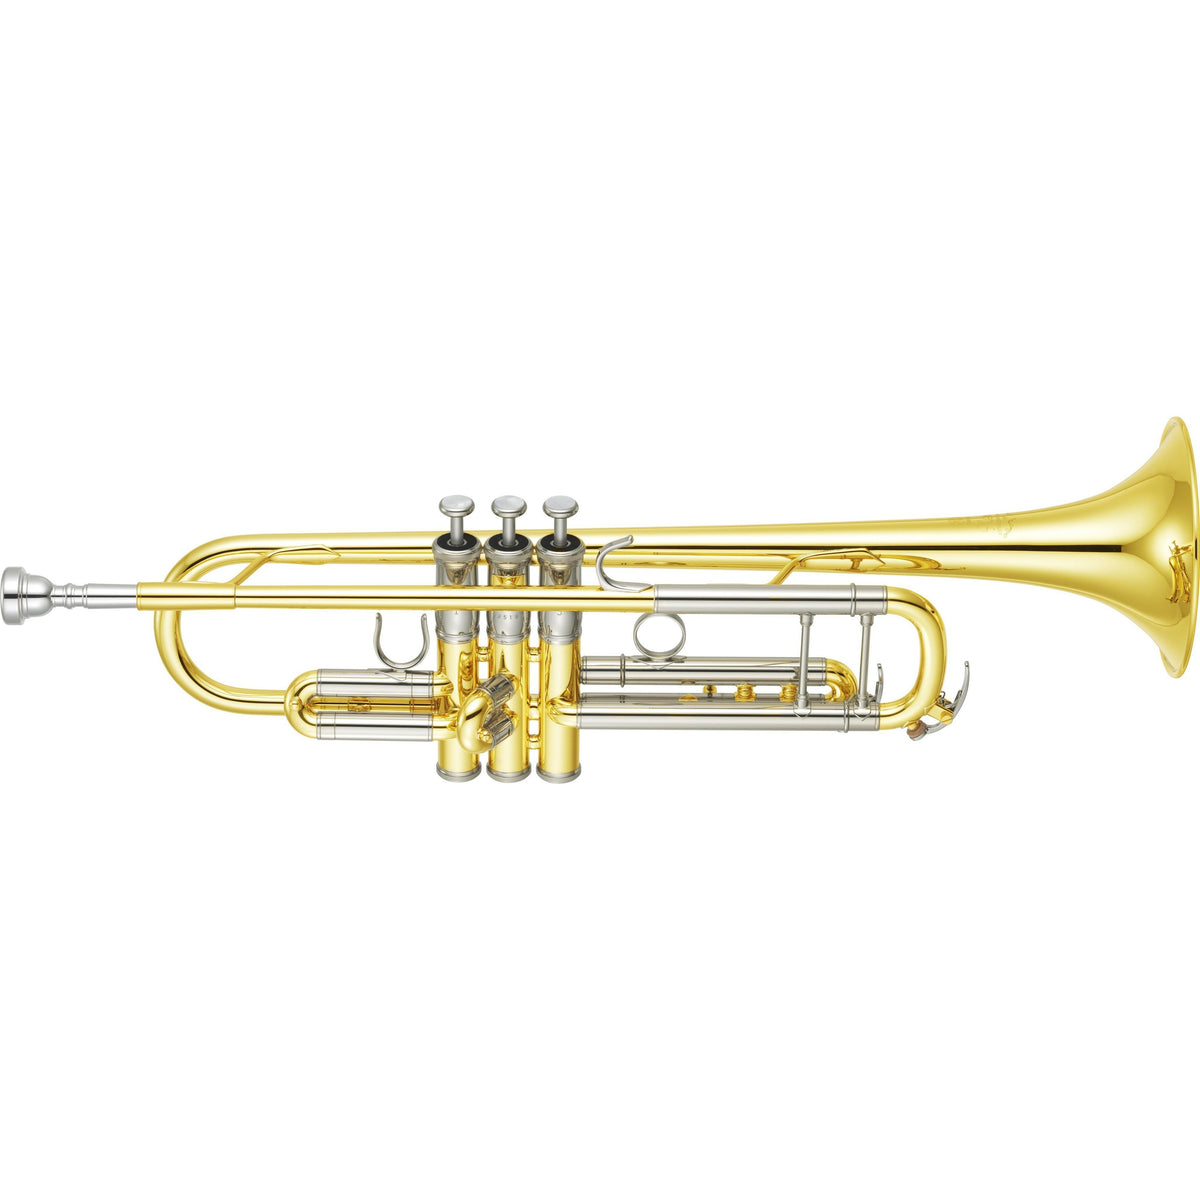 Yamaha - YTR-8345 - Custom Xeno Bb Trumpet-Trumpet-Yamaha-Music Elements